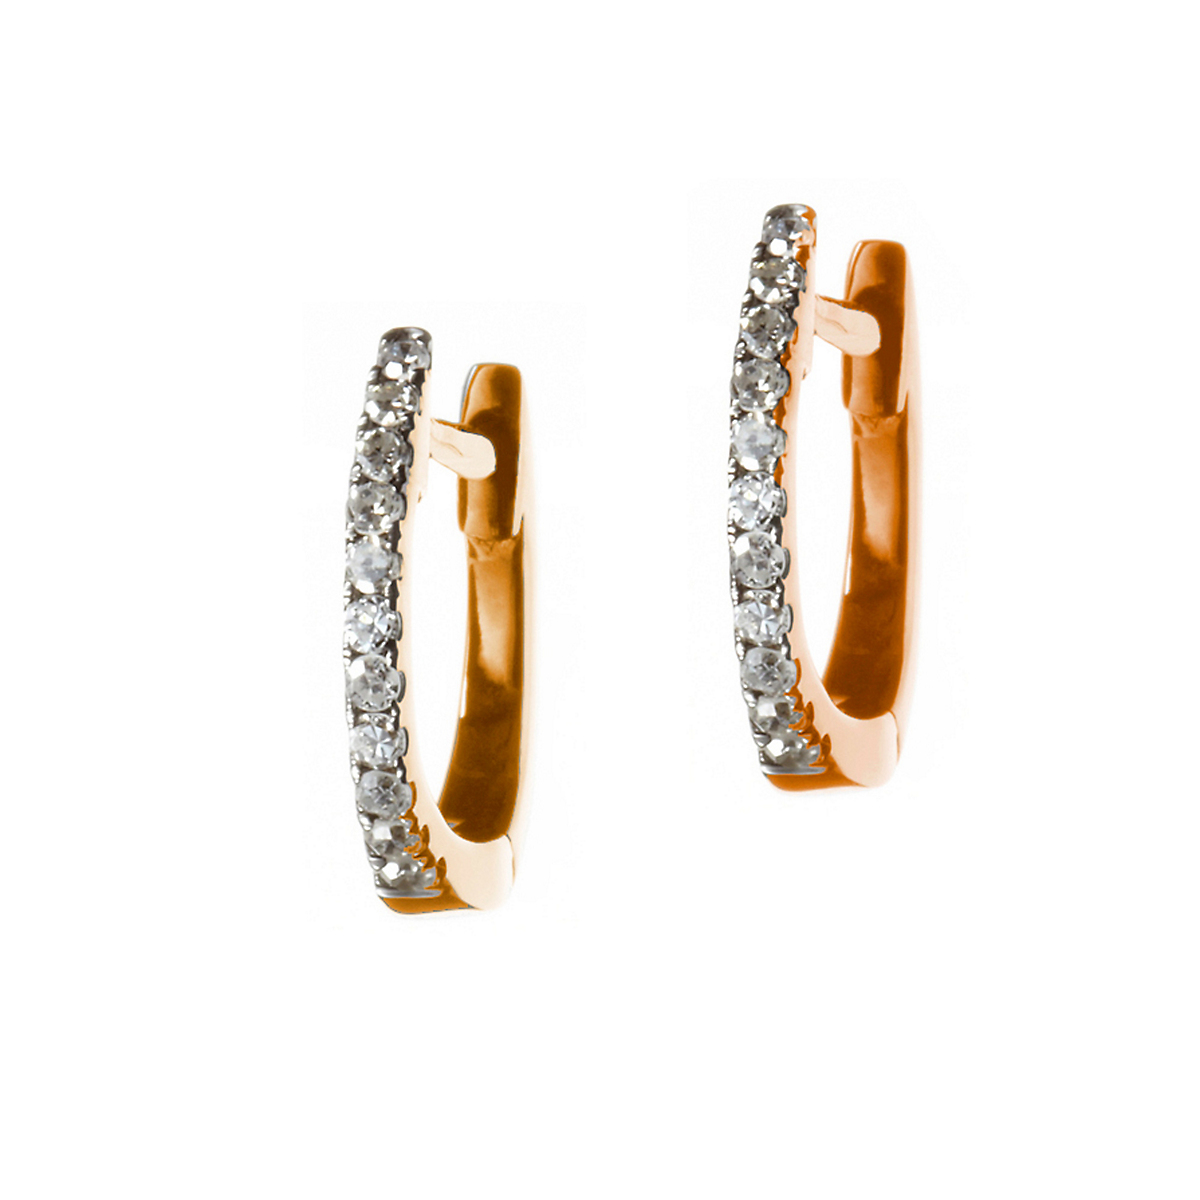 Nikki Baker Lusso Rose Gold & Diamond Mini Hoop Earrings